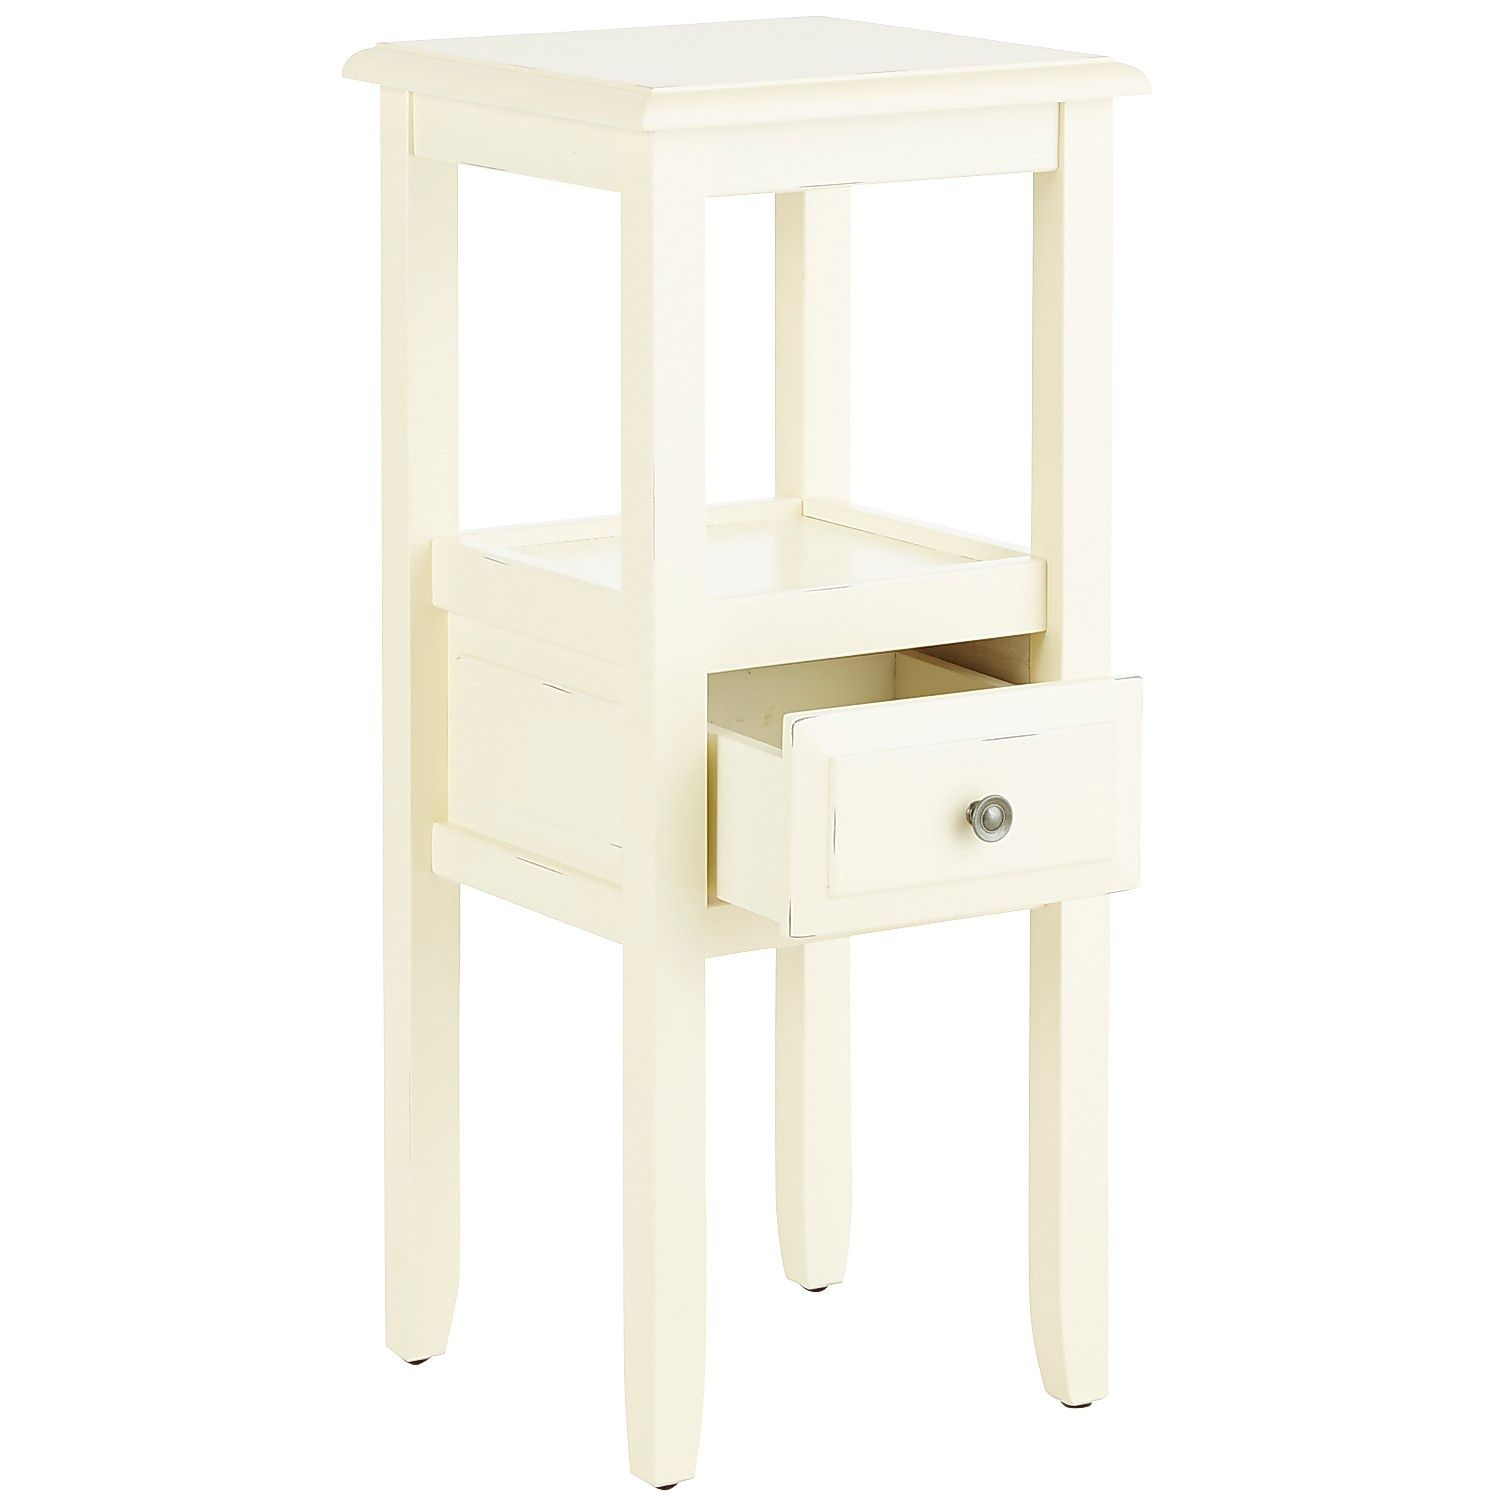 anywhere antique white pedestal table with knobs pier imports one accent mainstays parsons desk drawer lawn chair umbrella small end tables target pottery barn dishes garden